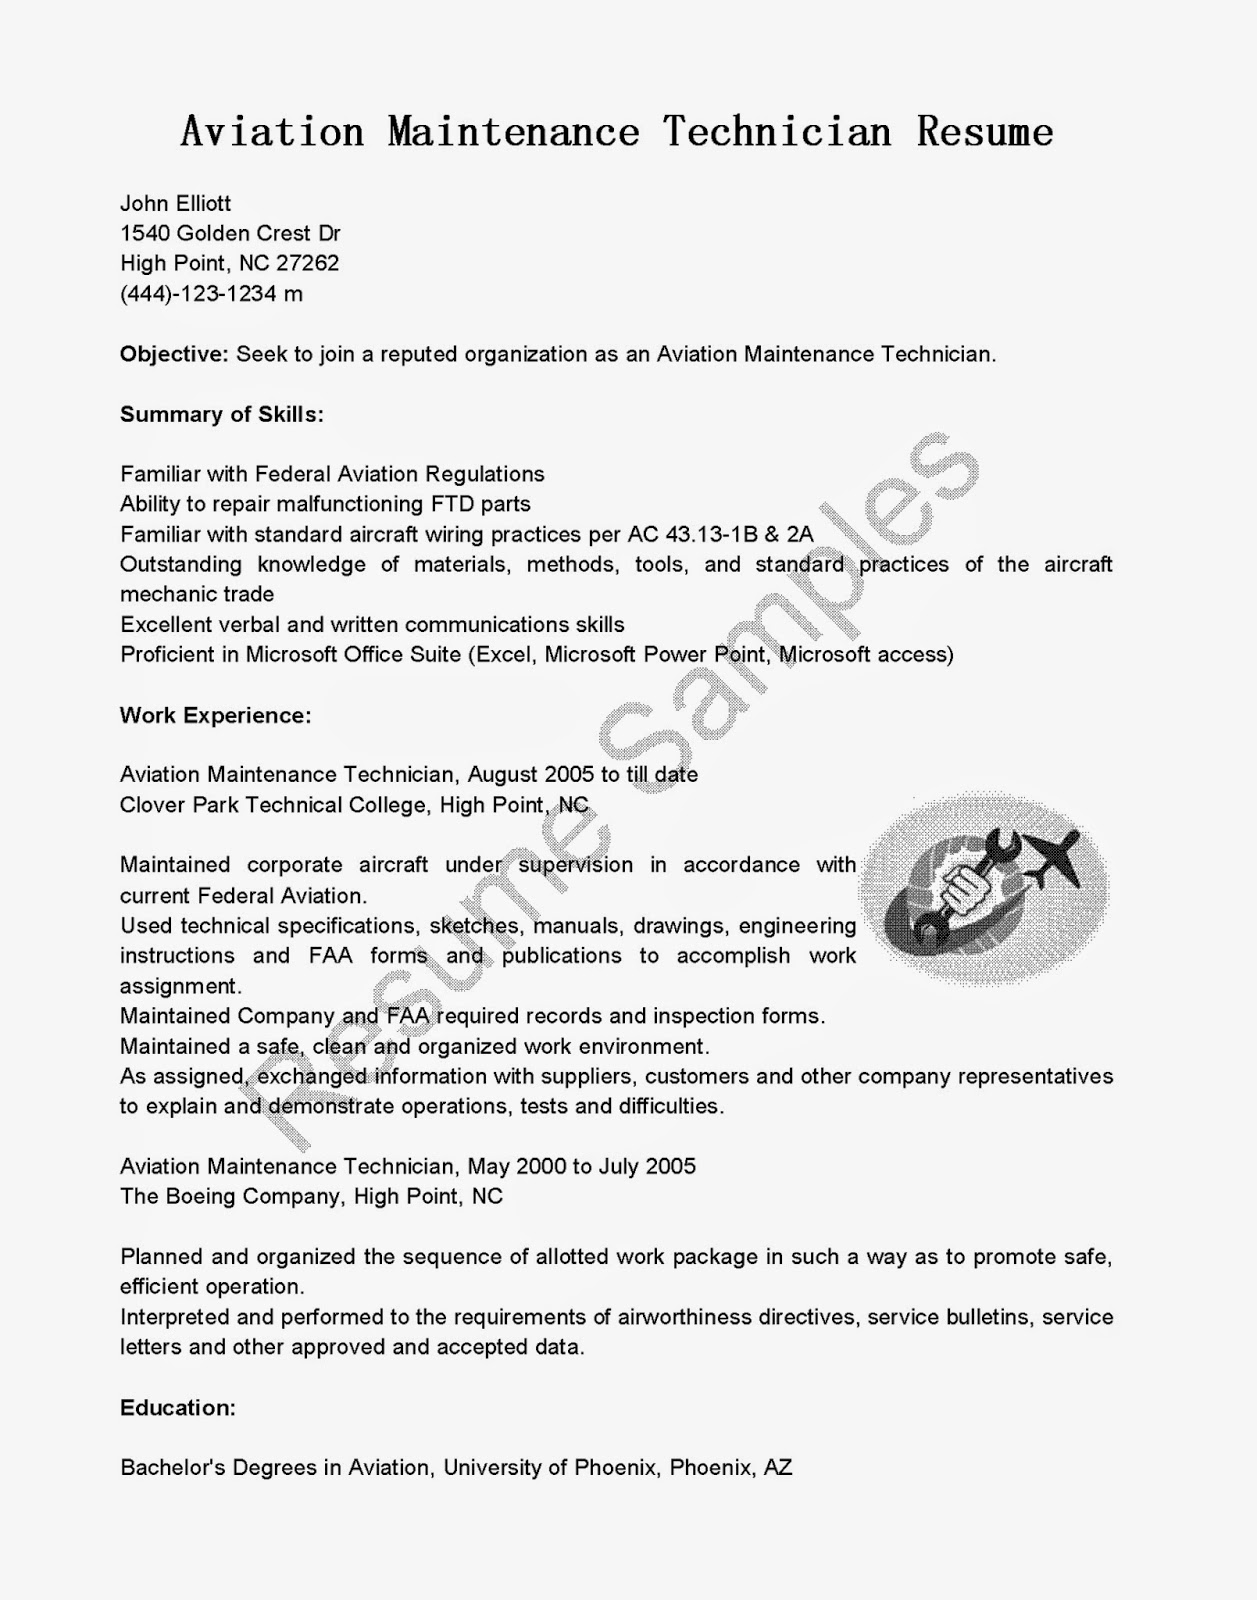 Cover Letter For Aircraft Mechanic Resume Best Resume Example  Aviation Mechanic Resume